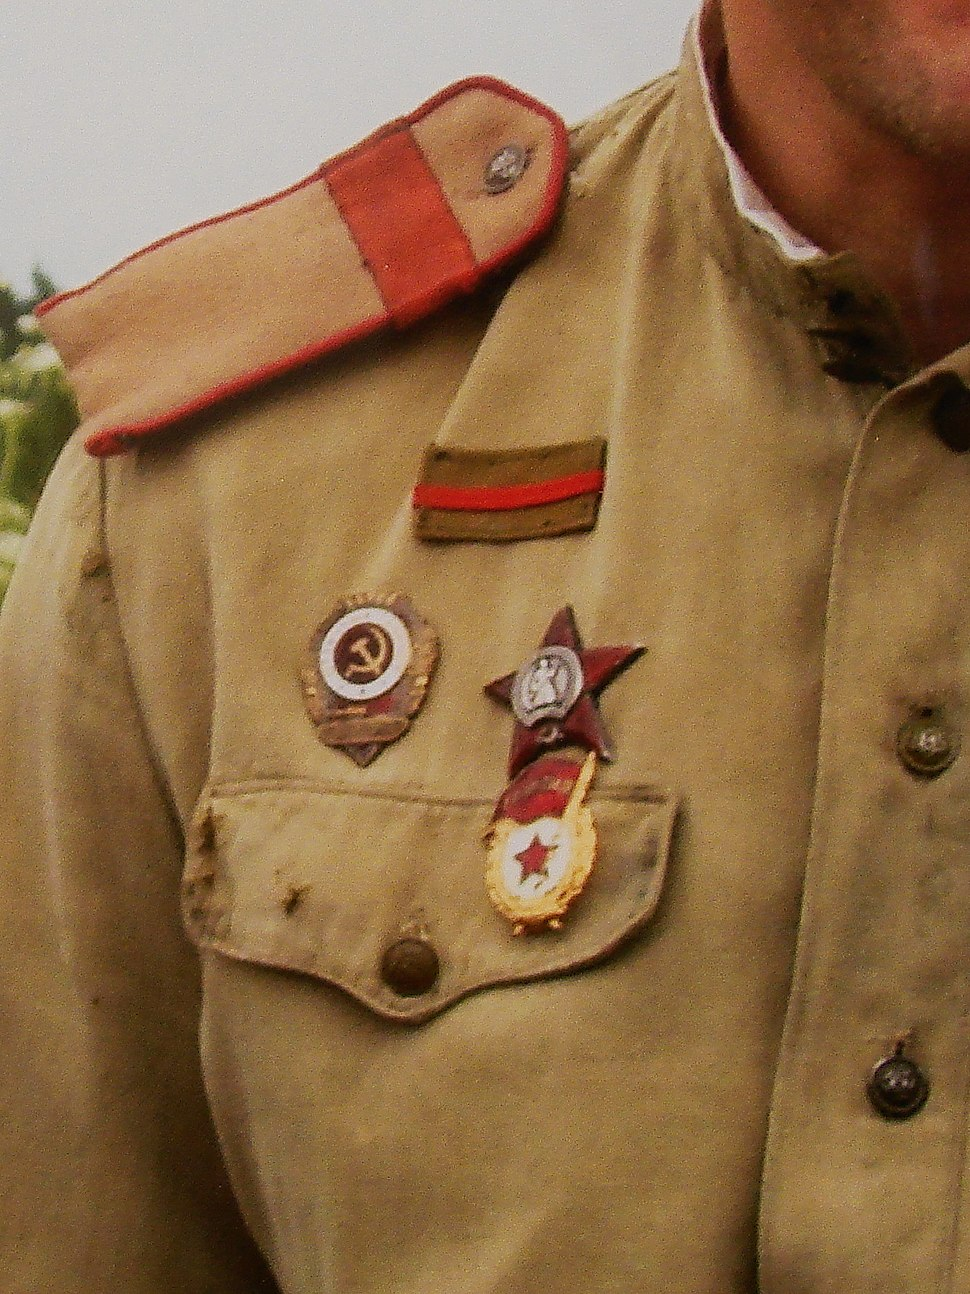 The sign of injury on the Soviet uniforms 4